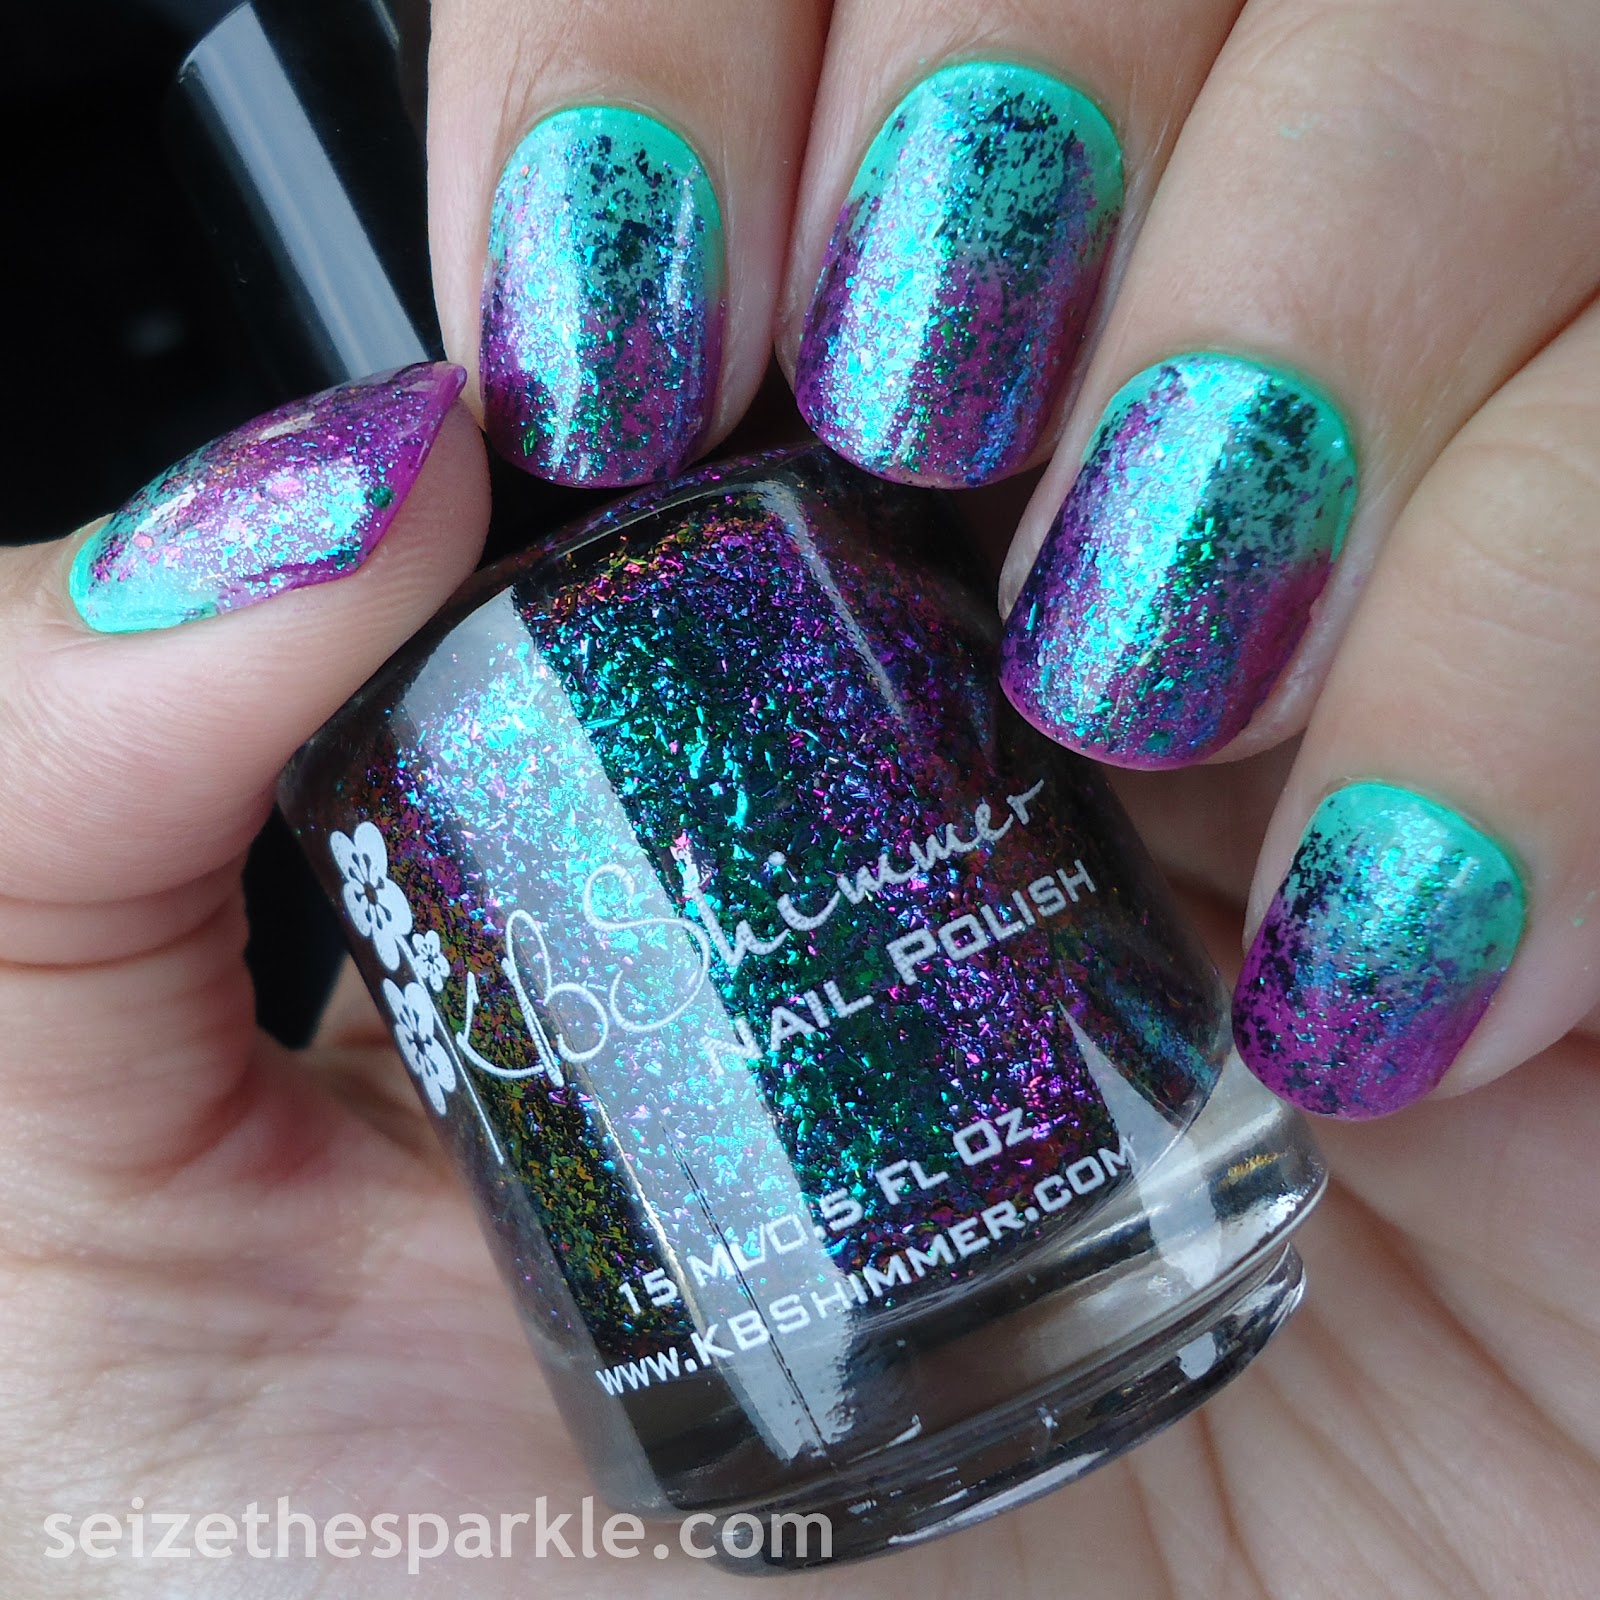 31dc2015 004 // green nails - seize the sparkle